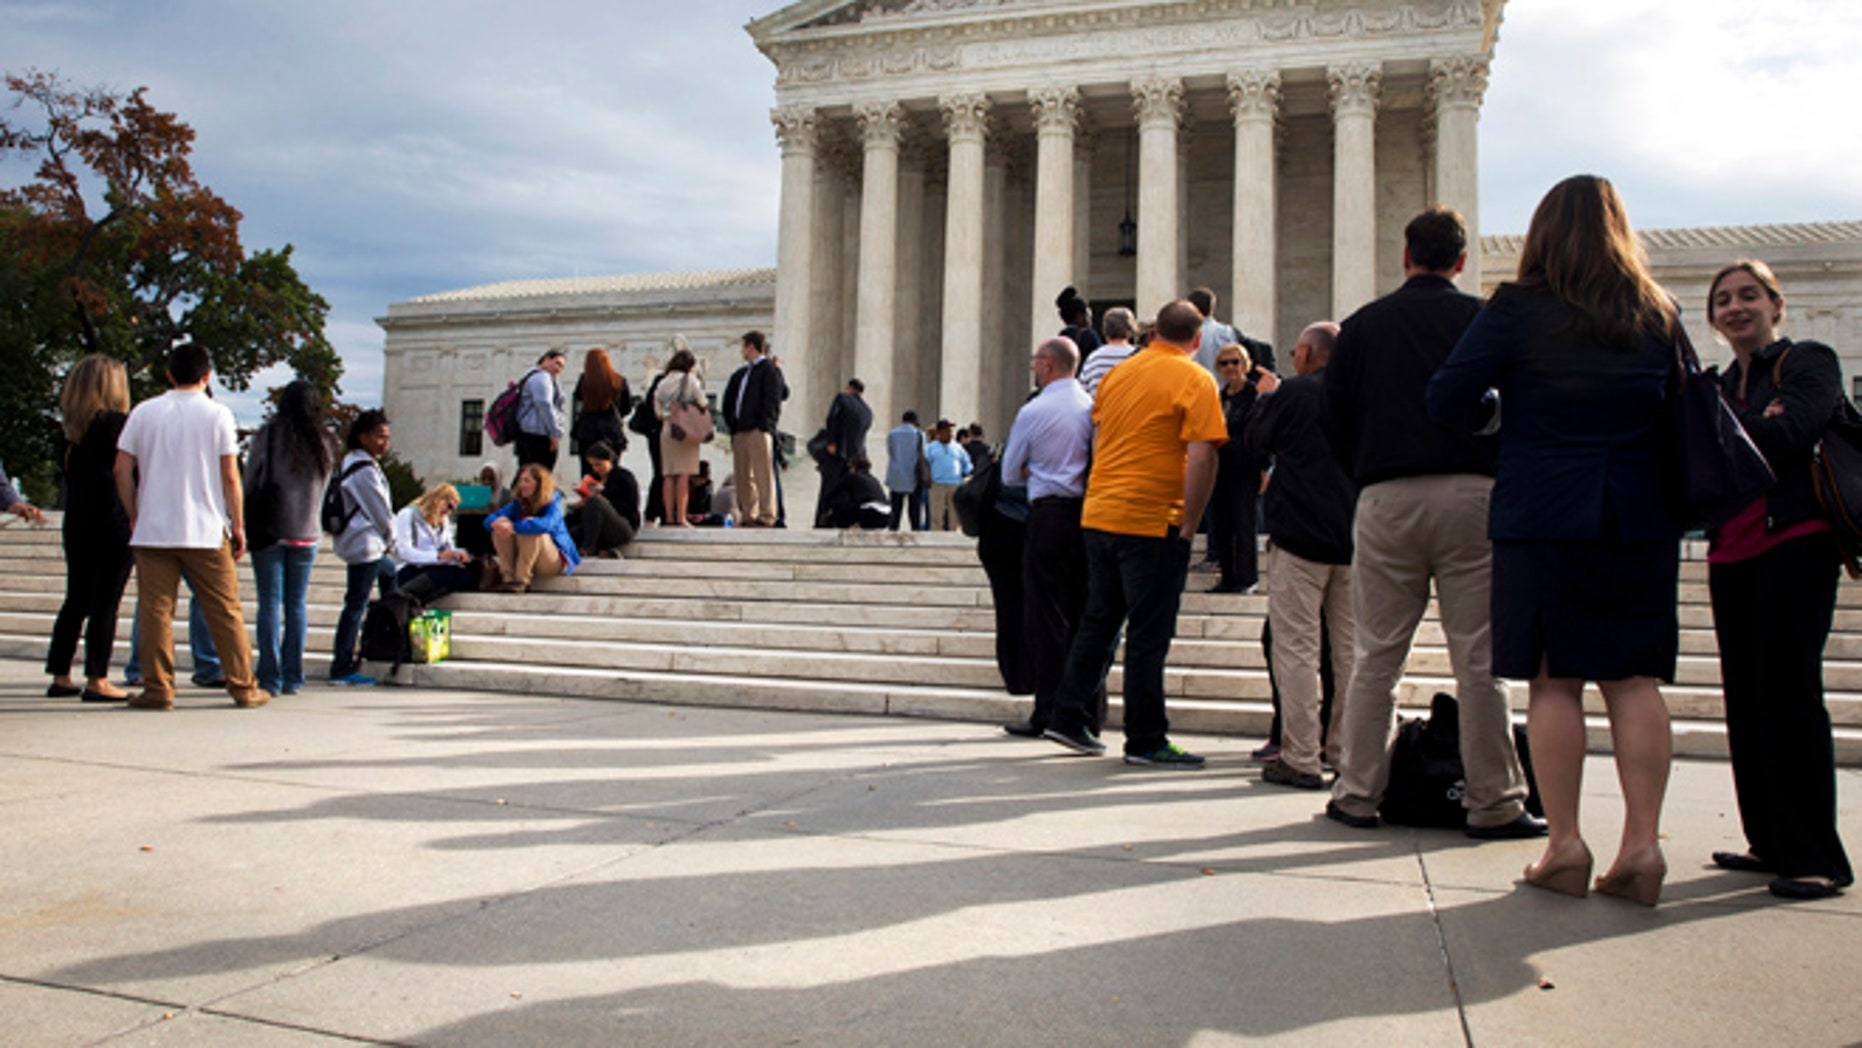 Oct. 13, 2015: People line up outside of the Supreme Court in Washington as the justices began to discuss sentences for young prison 'lifers.'